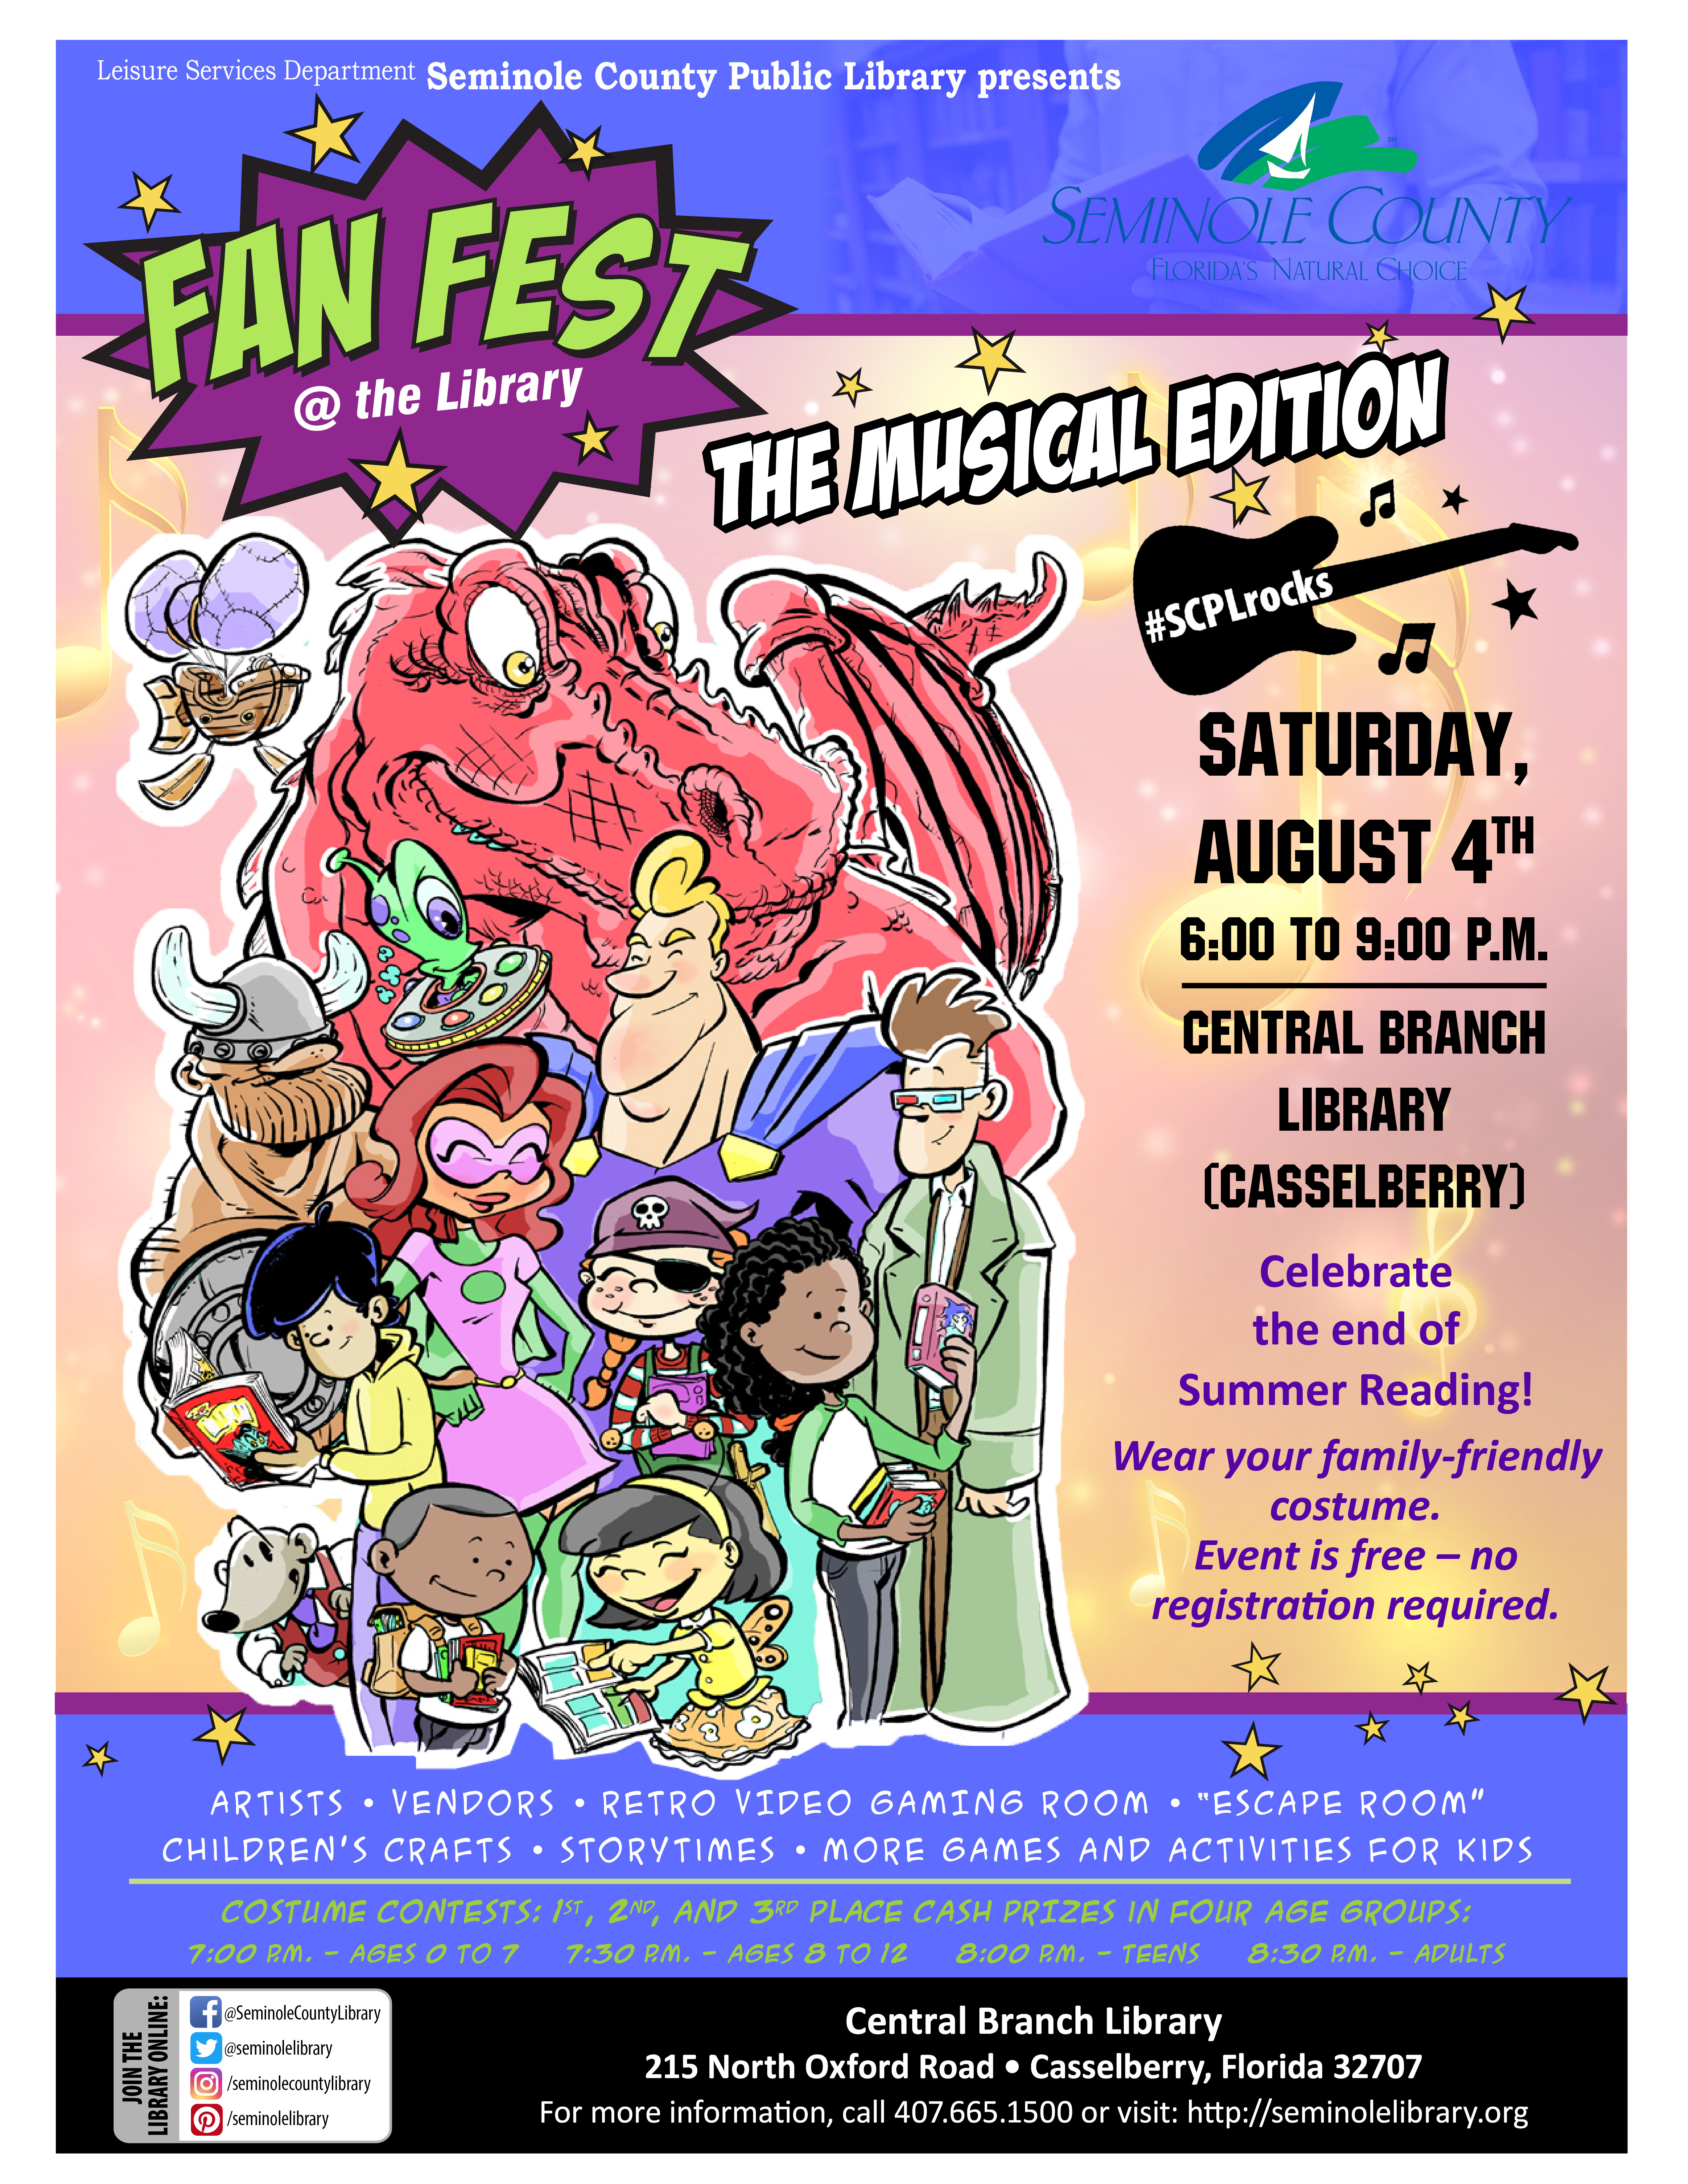 Fan Fest the Musical Edition @ the Library 2018